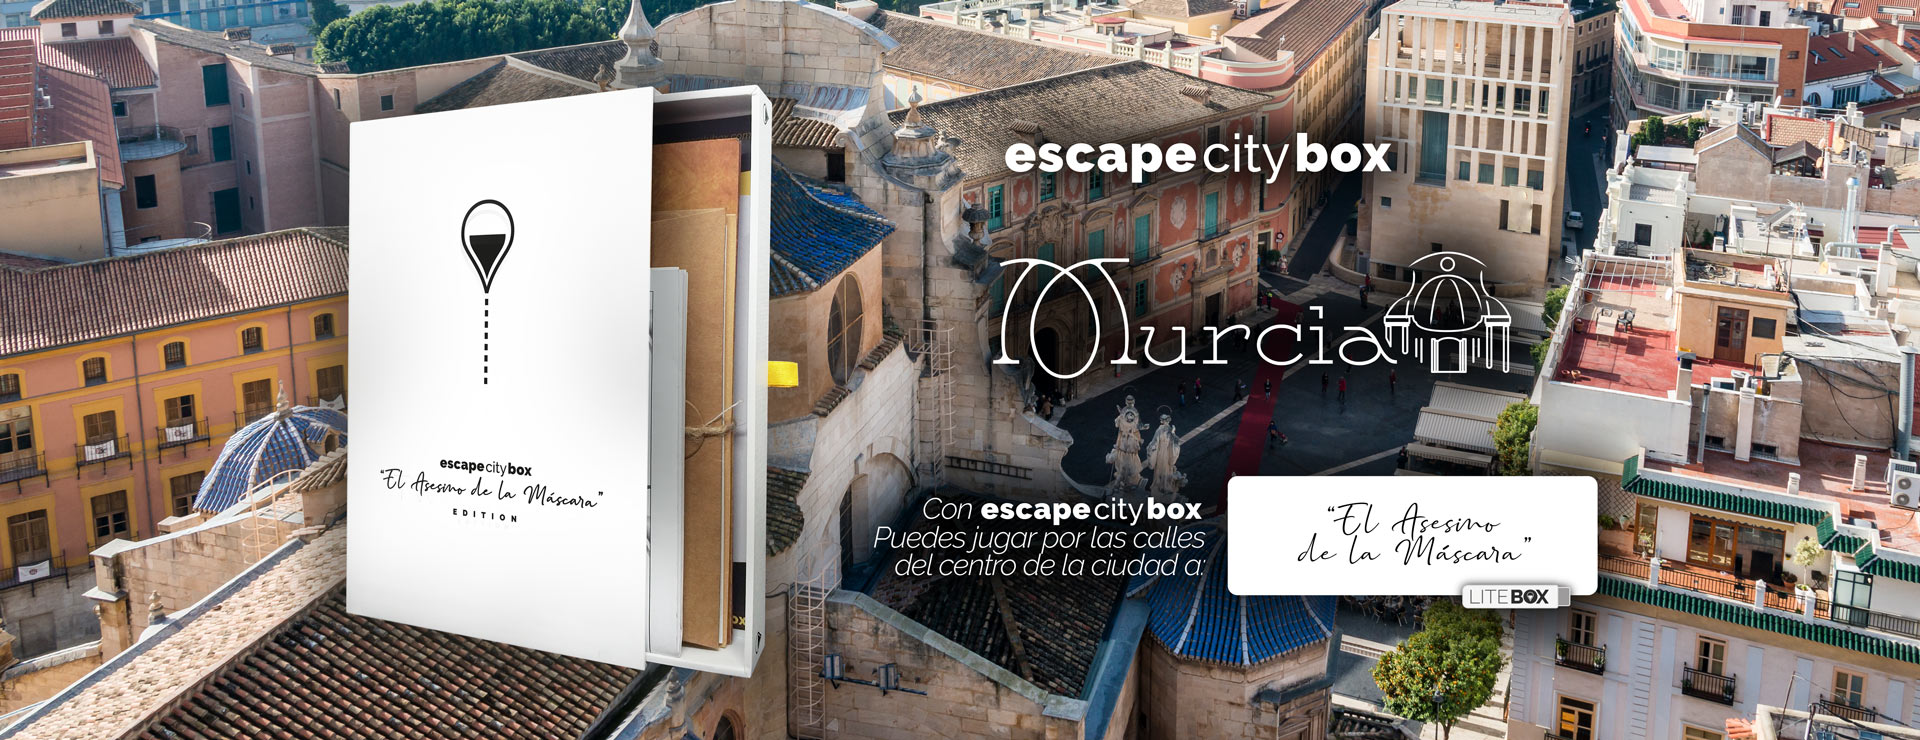 City Escape en murcia